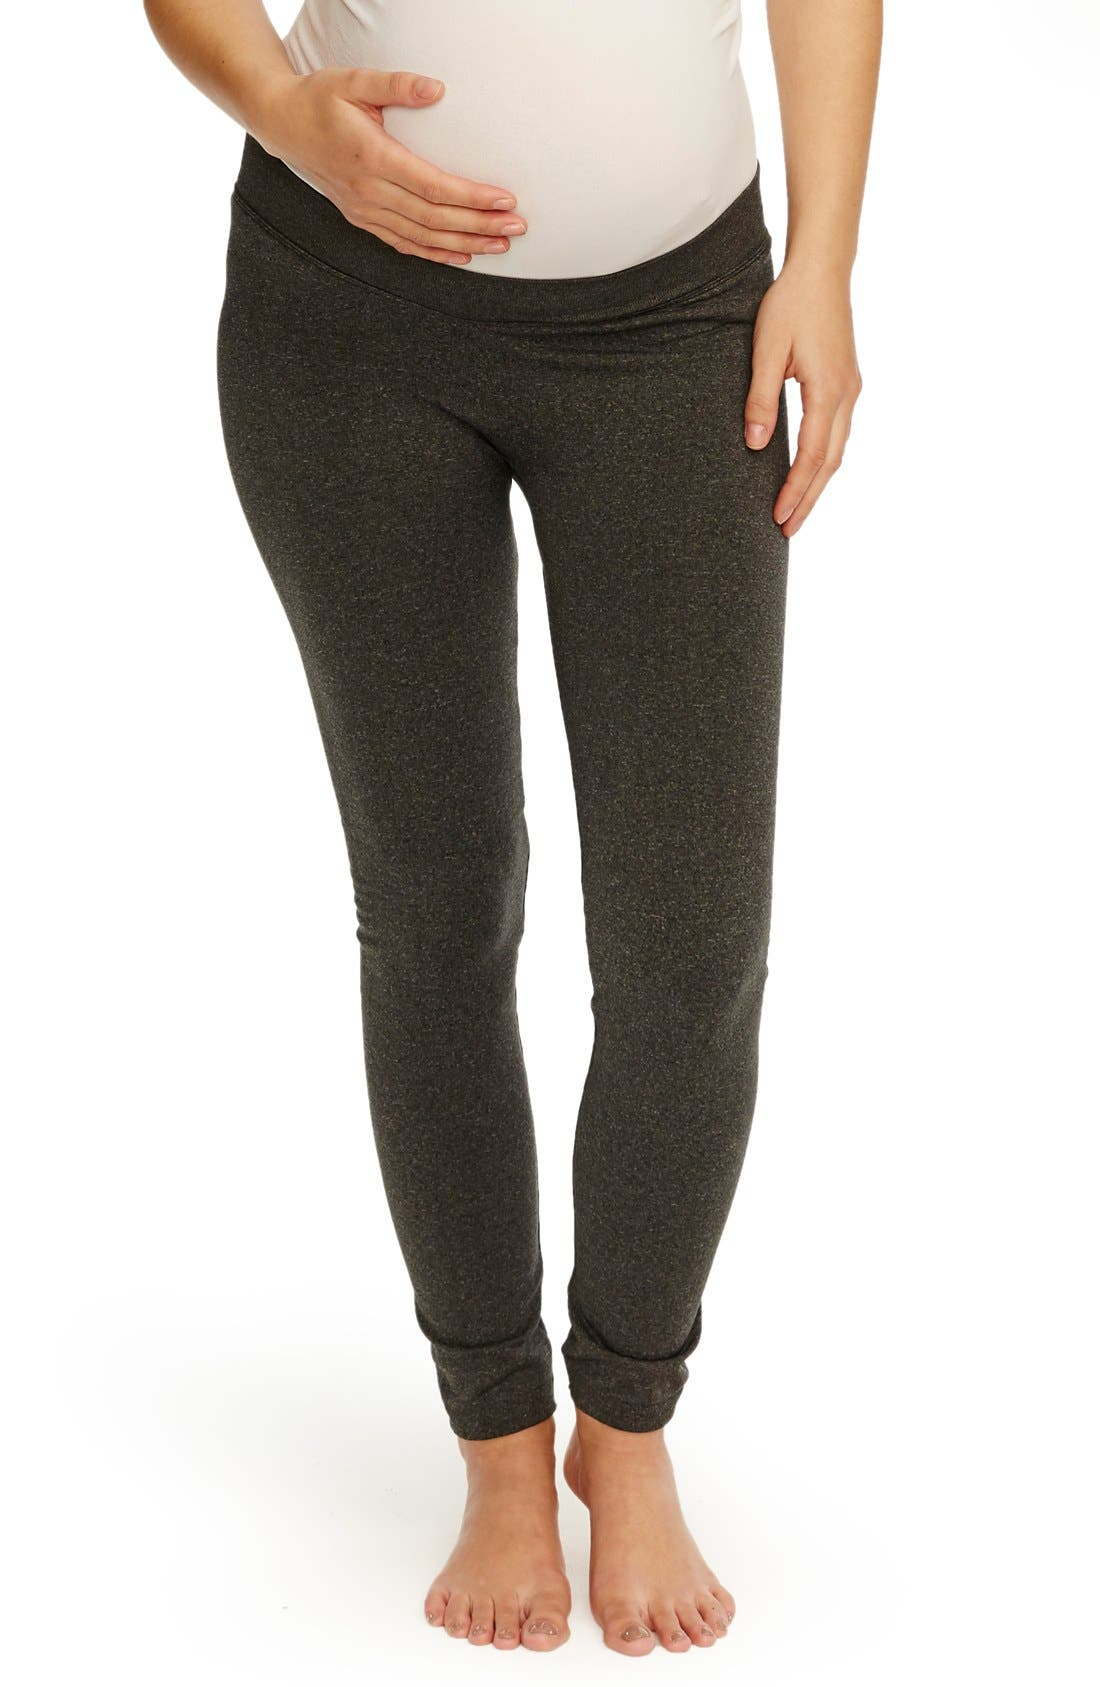 Alternate Image 1 Selected - Rosie Pope Seamless Low Rise Maternity Leggings